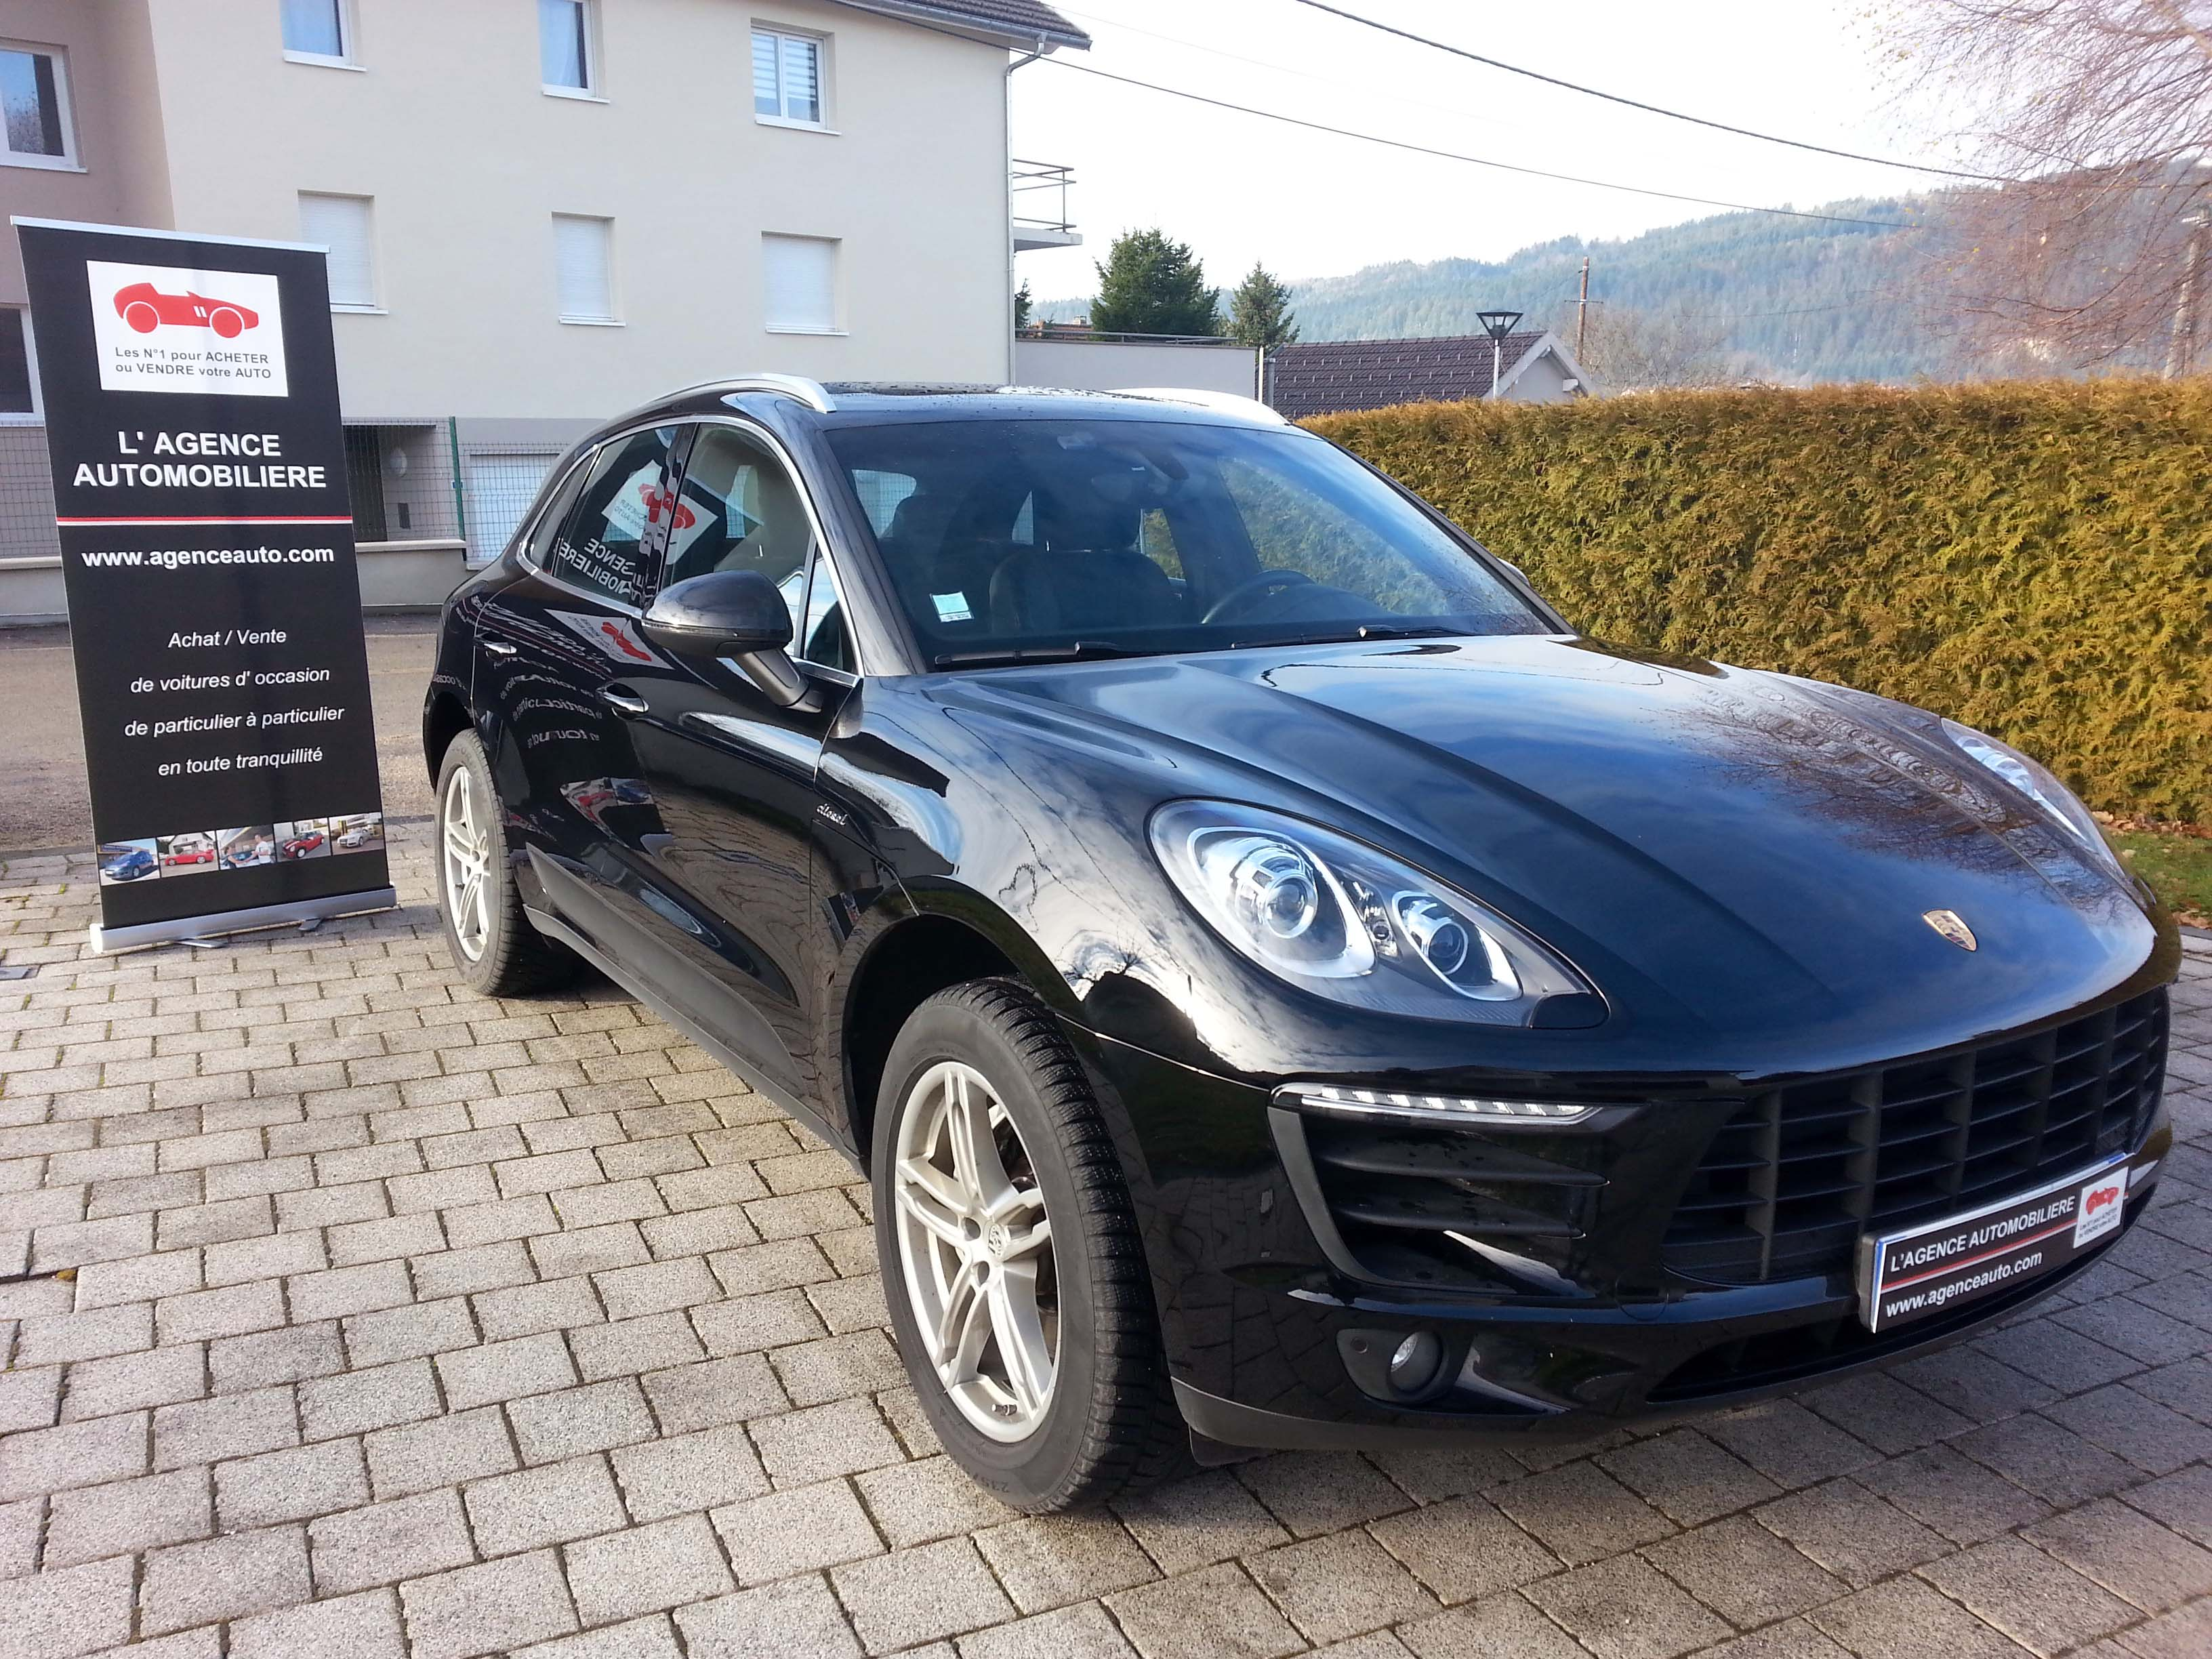 porsche macan 3 0 v6 tdi 258 cv occasion montbeliard pas cher voiture occasion doubs 25400. Black Bedroom Furniture Sets. Home Design Ideas